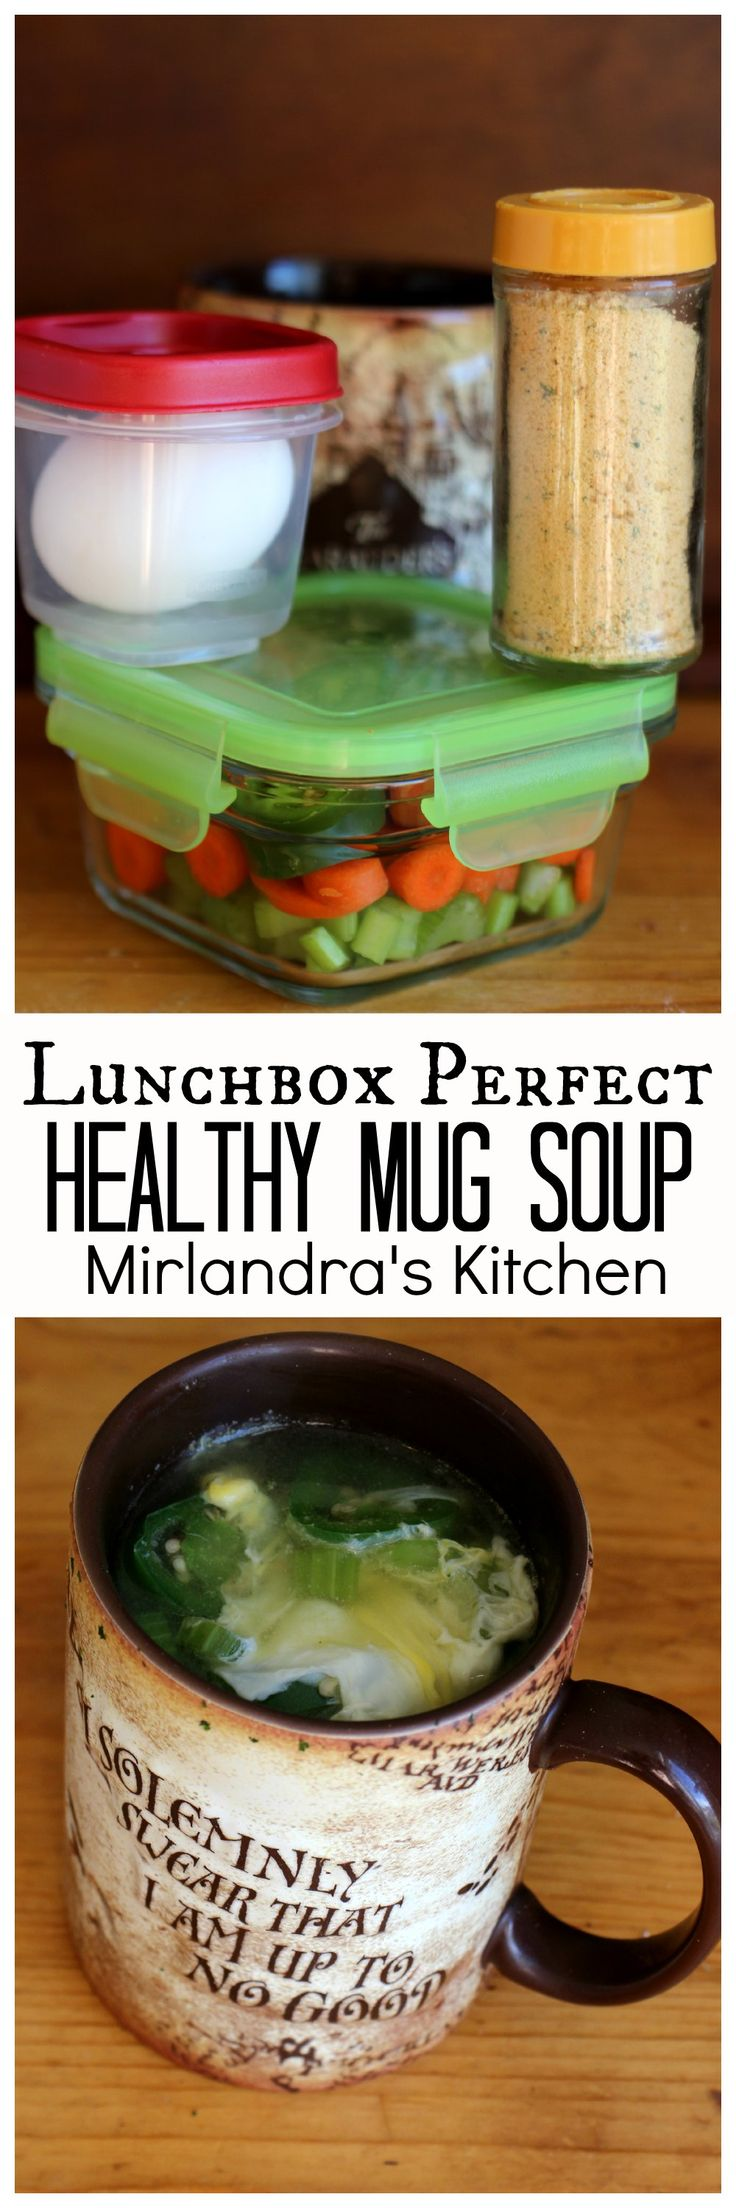 Healthy Mug Soup is a simple and delicious vegetable egg soup. Add this to your lunchbox routine – It is a